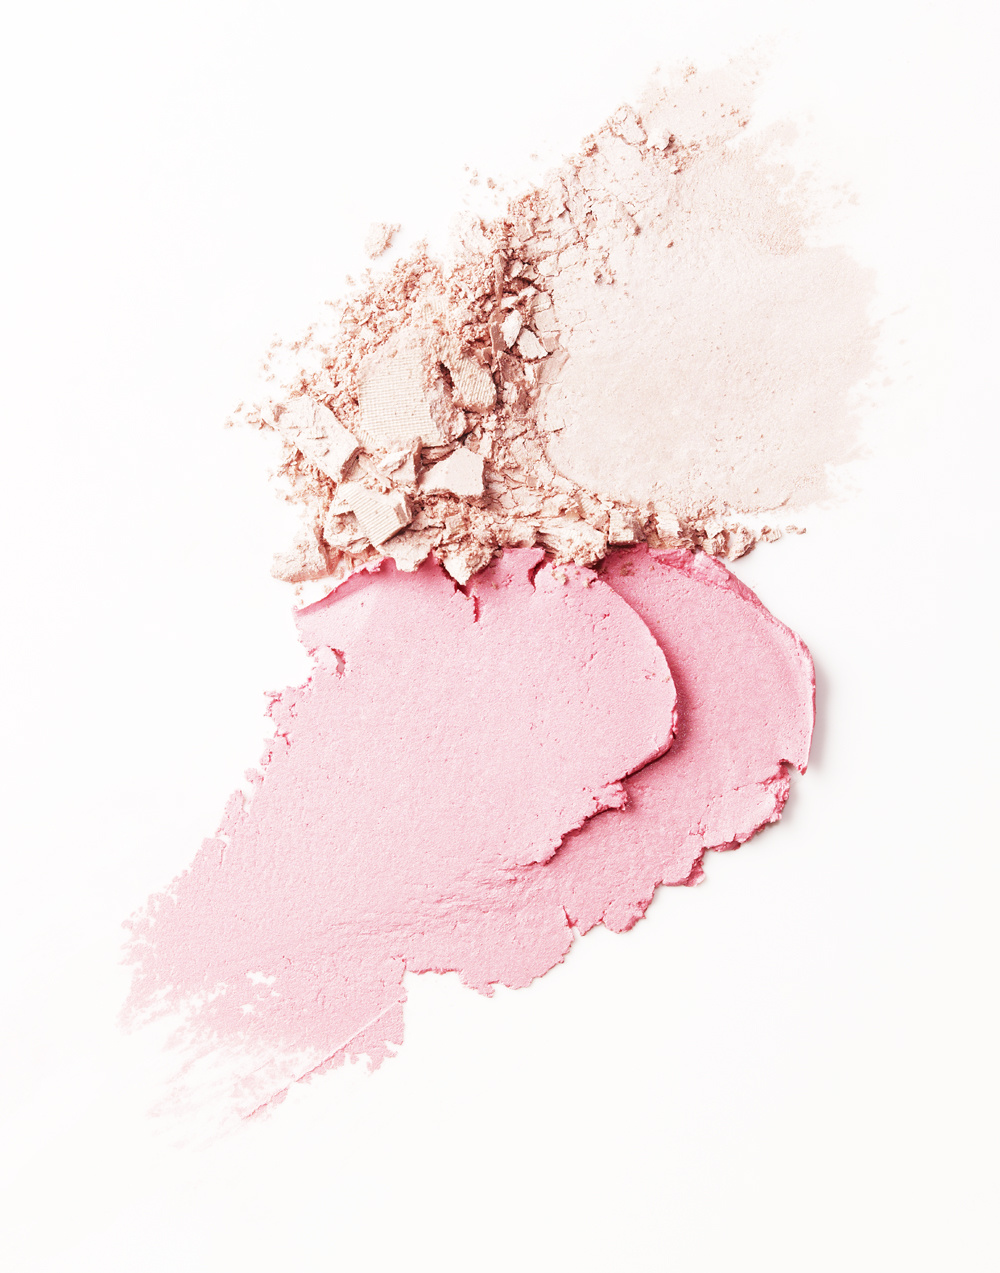 Kristin Wolford Photography - Pink Make Up